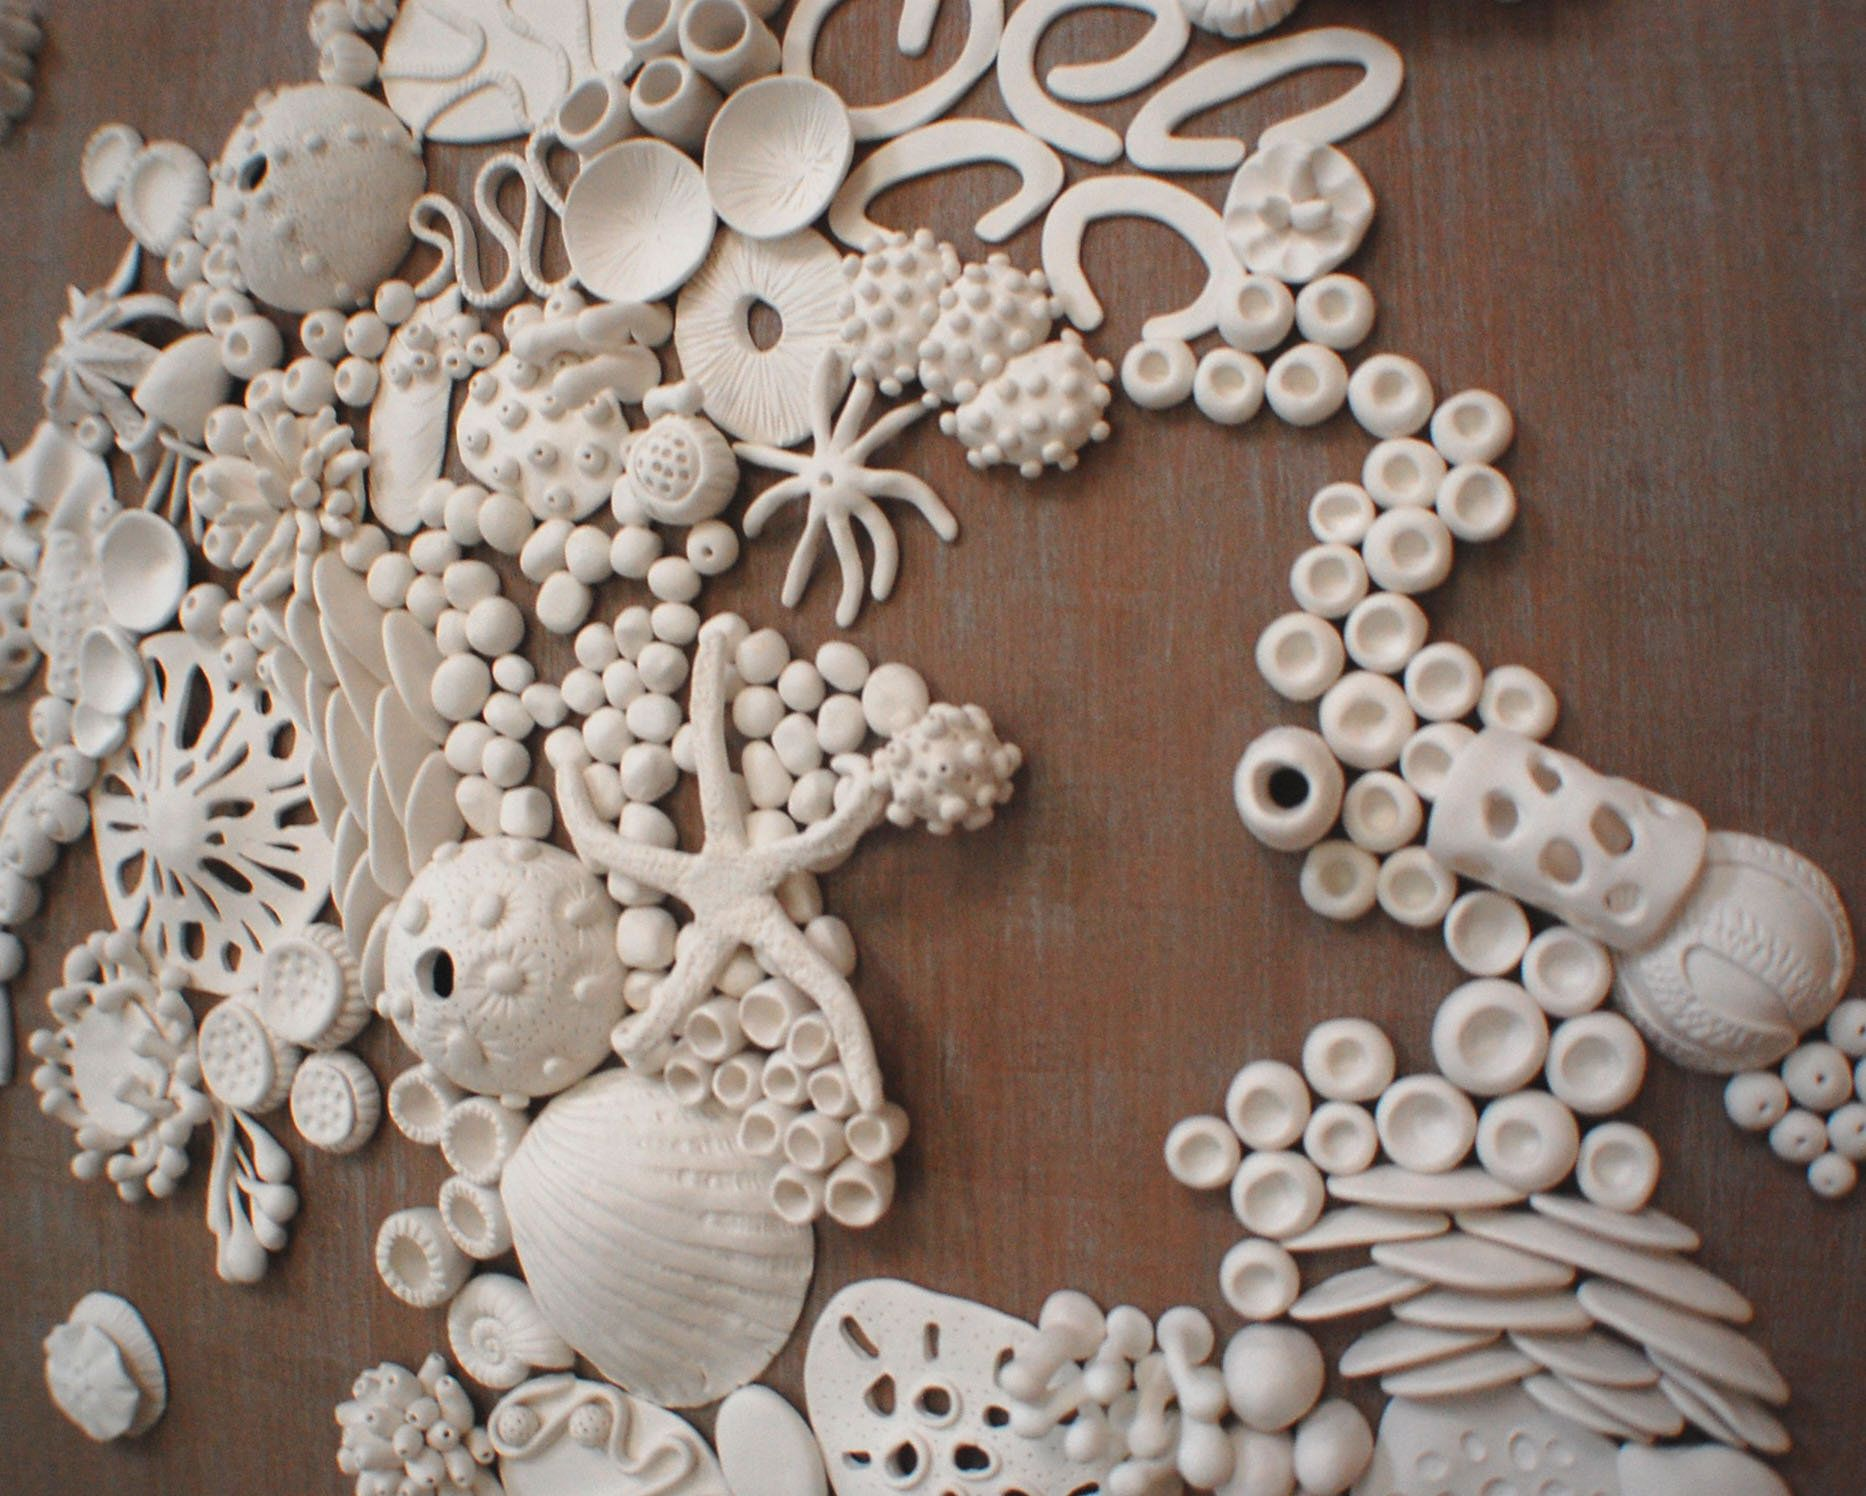 Coral Reef Decor 3d Wall Art Wall Hanging Ocean Art Ocean Conservation Beach House Decor Art Installation Nautical Art Sea Art Clay Wall Art 3d Wall Art Coral Sculpture